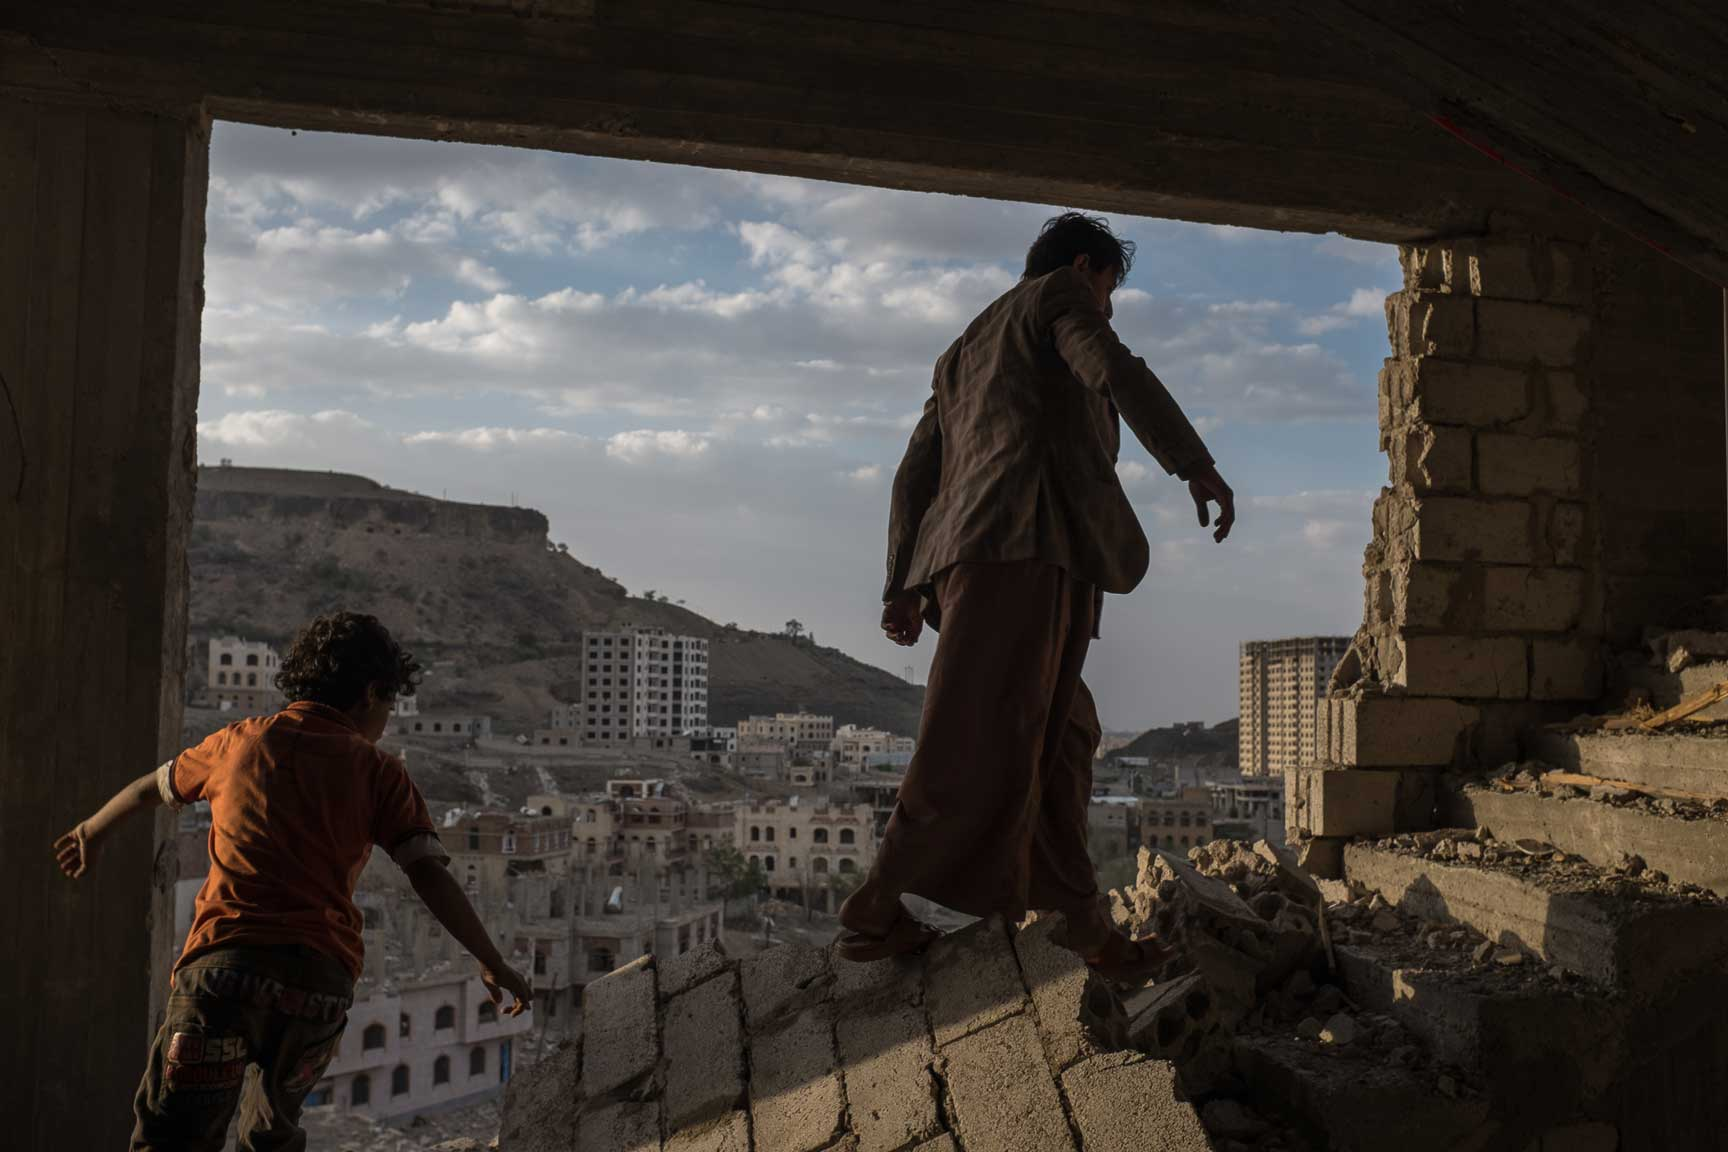 Yemeni brothers climb the remains of an apartment building in Faj Attan, a district in Yemen heavily targeted by airstrike, Monday Auugst 17, 2015 in Sana'a, Yemen.